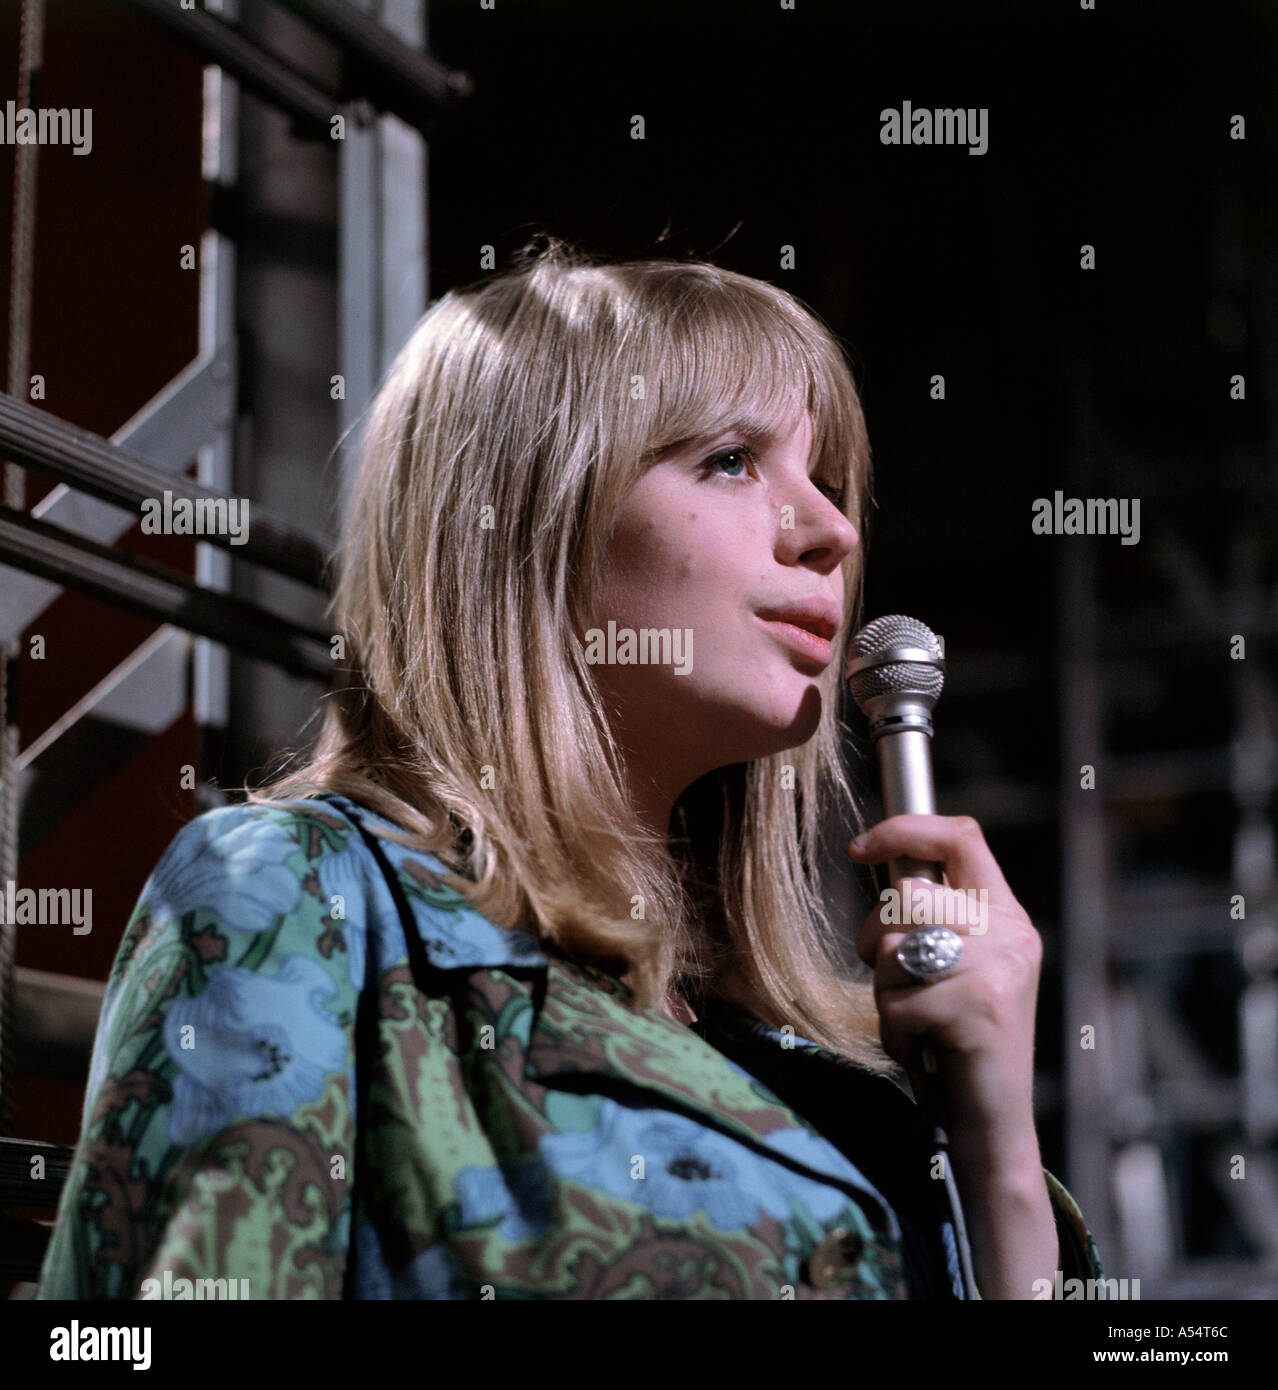 marianne-faithfull-uk-pop-singer-in-1965